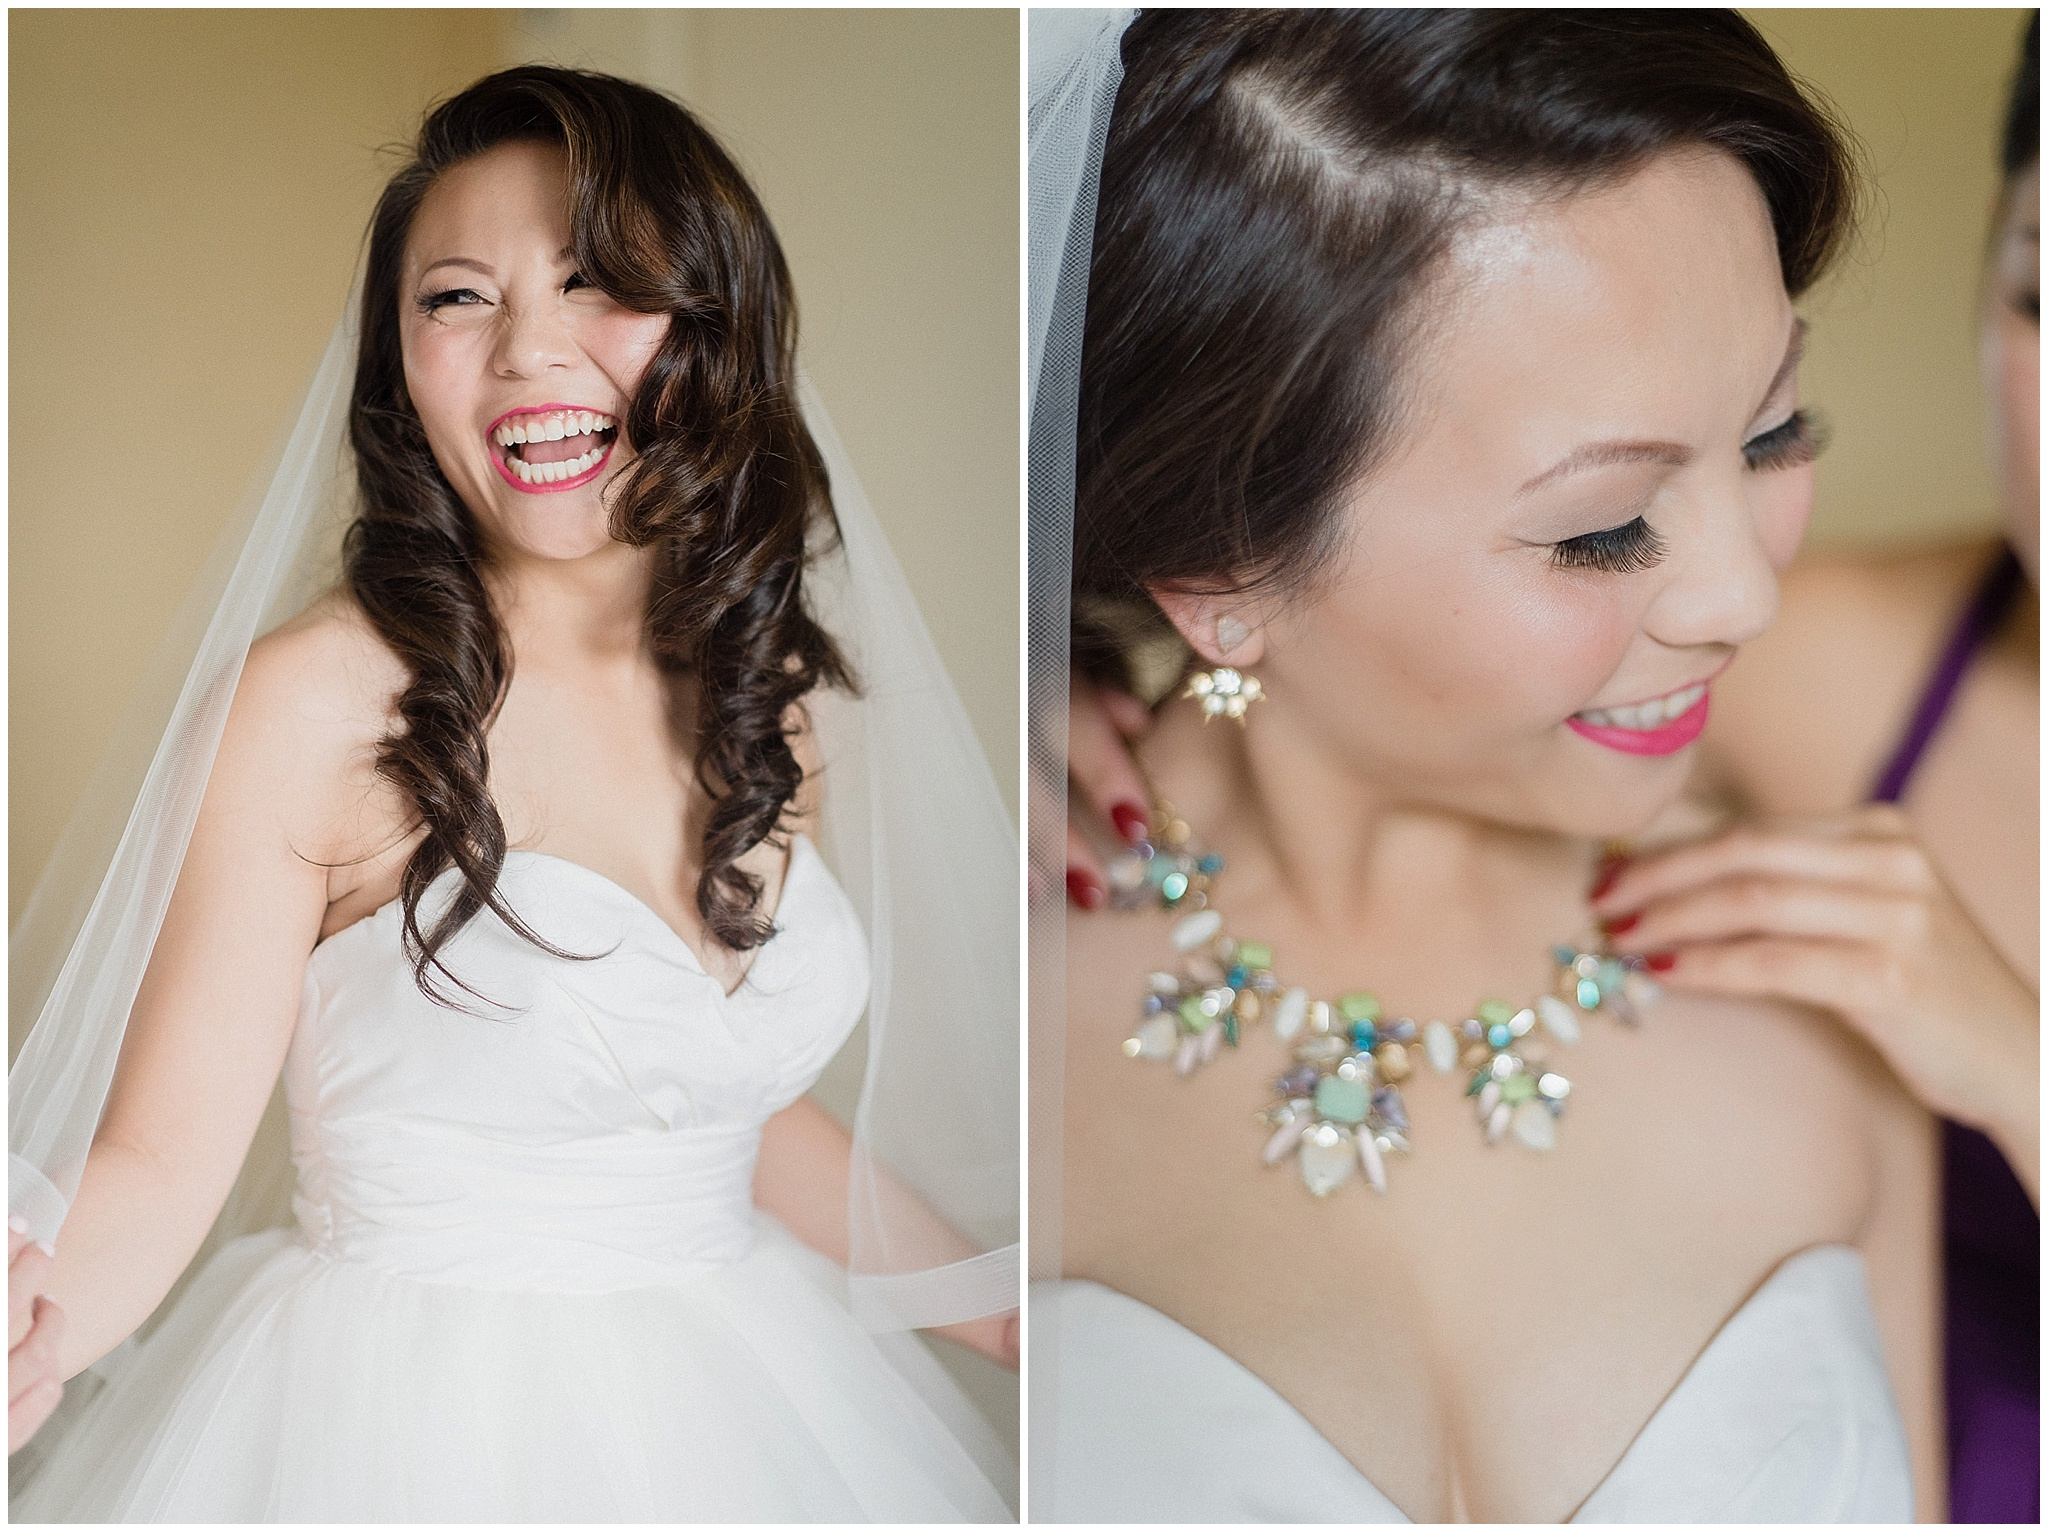 Glowing bride in Hayley Paige gown and Stella & Dot necklace photographed by Jenn Kavanagh Photography